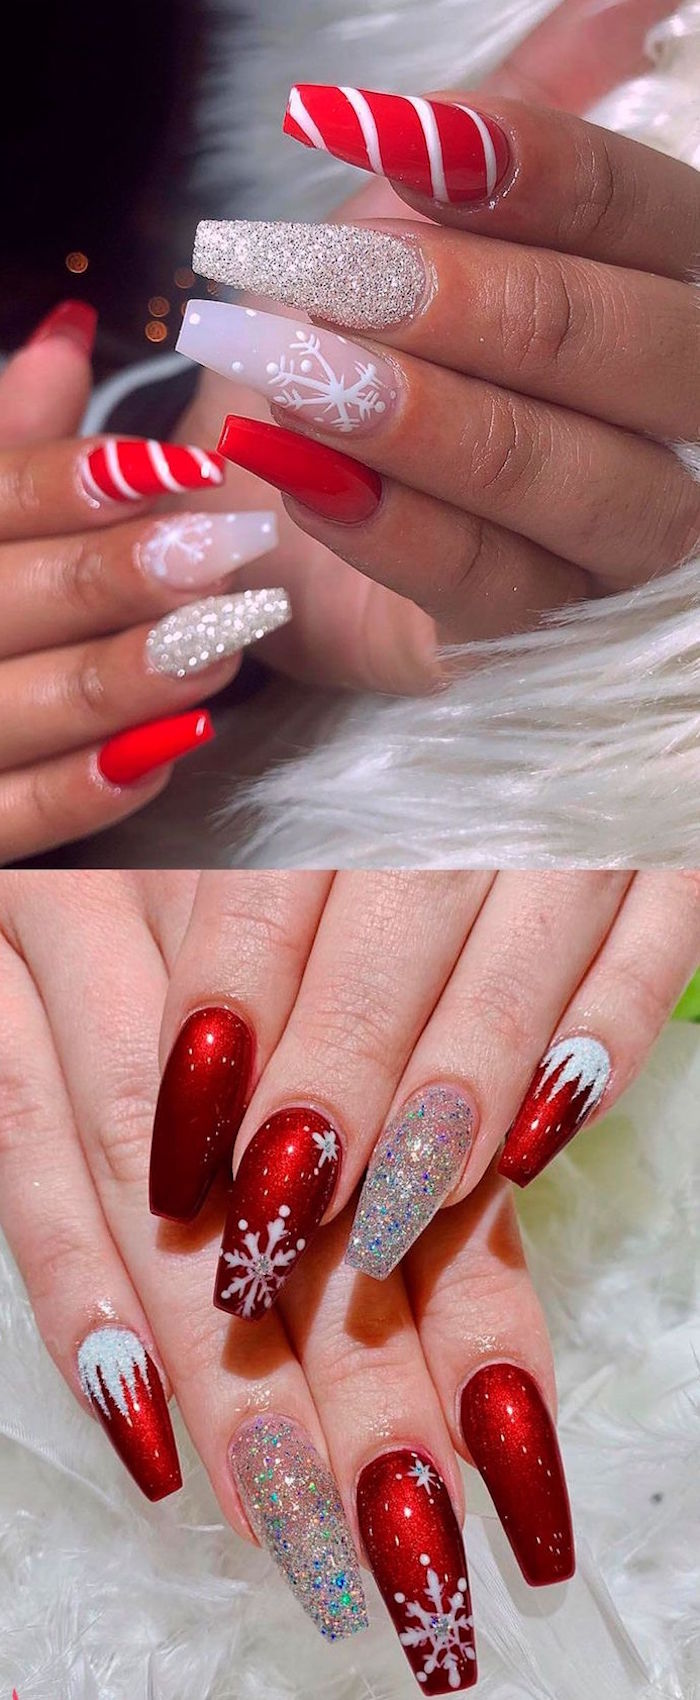 christmas nails two photos of long coffin nails in red and silver glitter with snowflake decorations